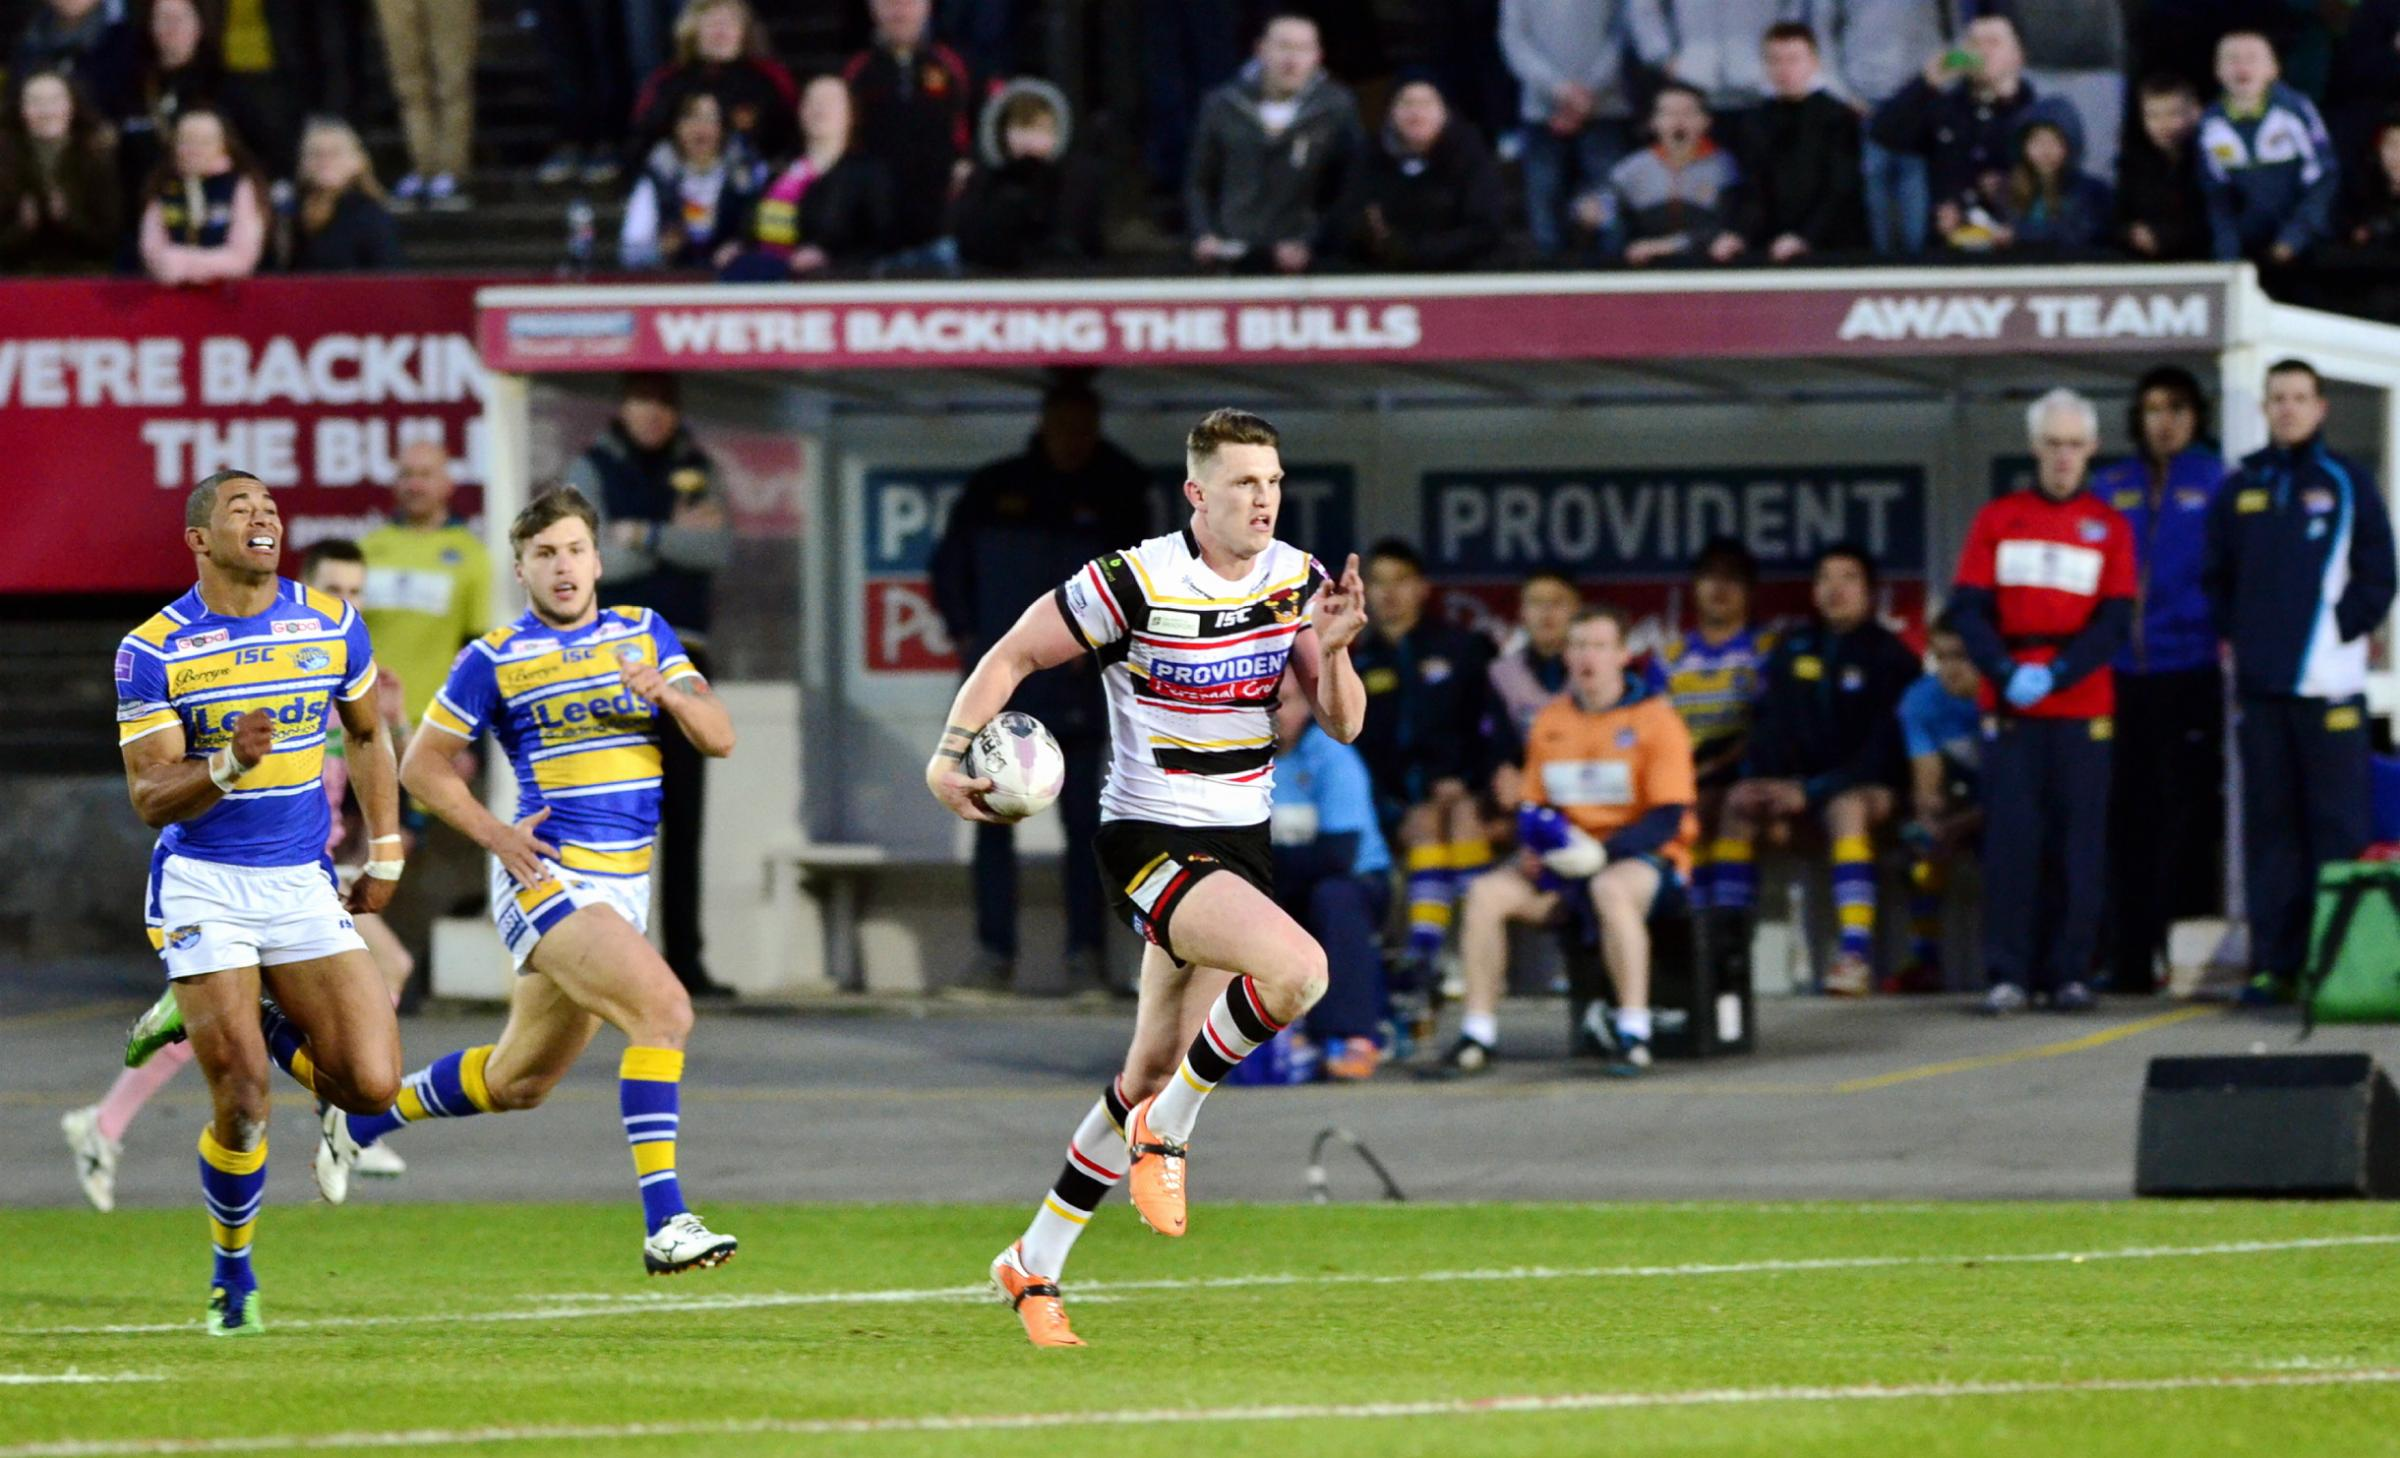 Bradford Bulls blown away by rivals Leeds Rhinos during 15 minutes of hell